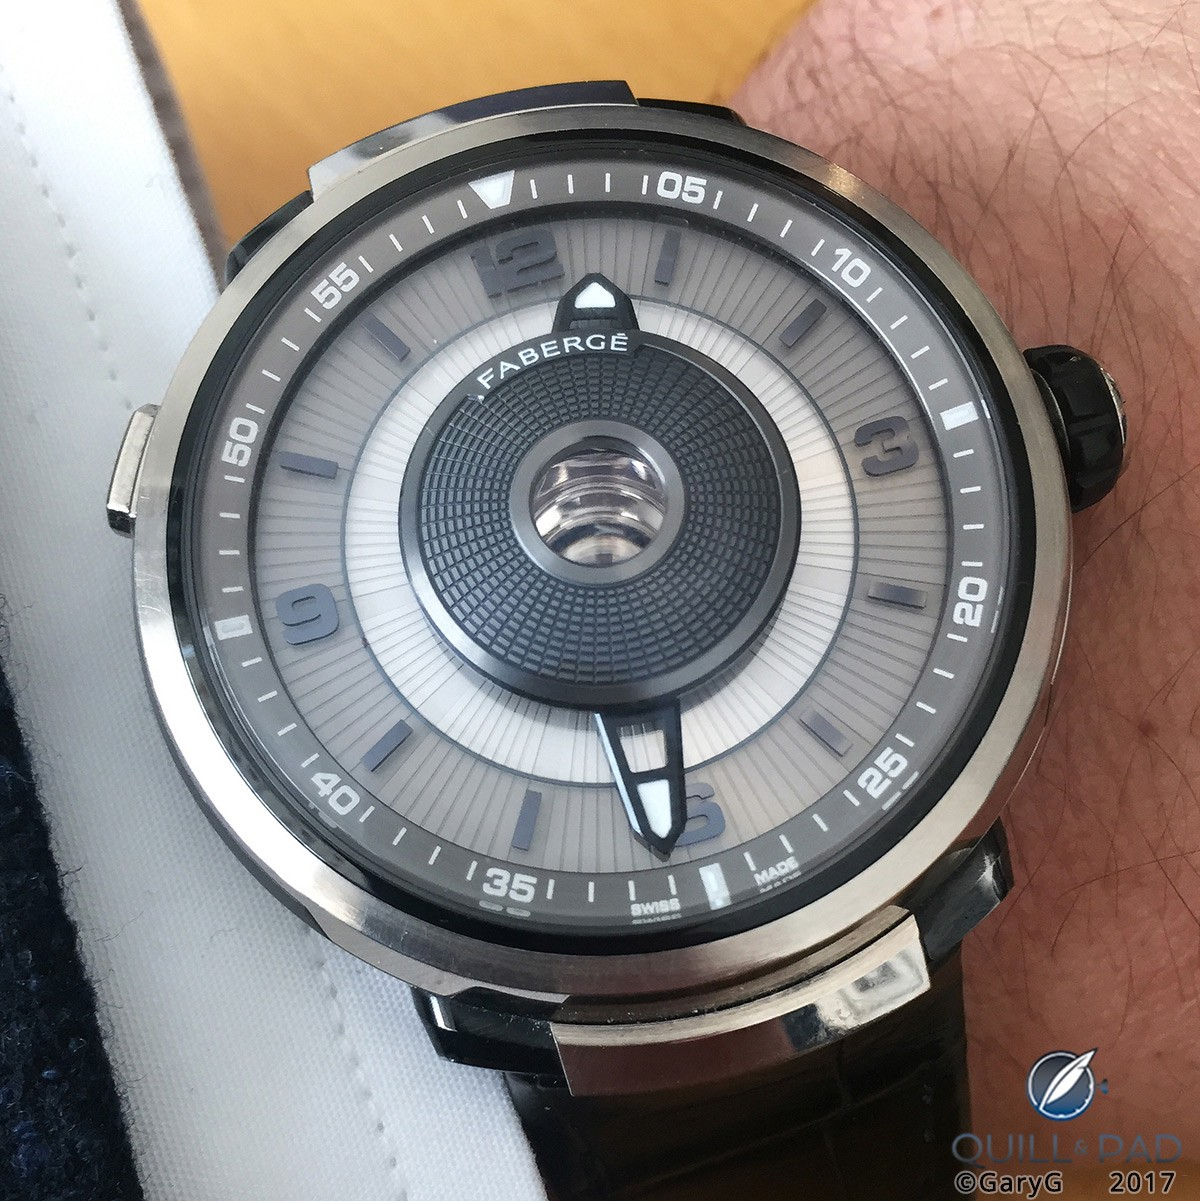 On the wrist: Fabergé Visionnaire DTZ with central indication of second time zone